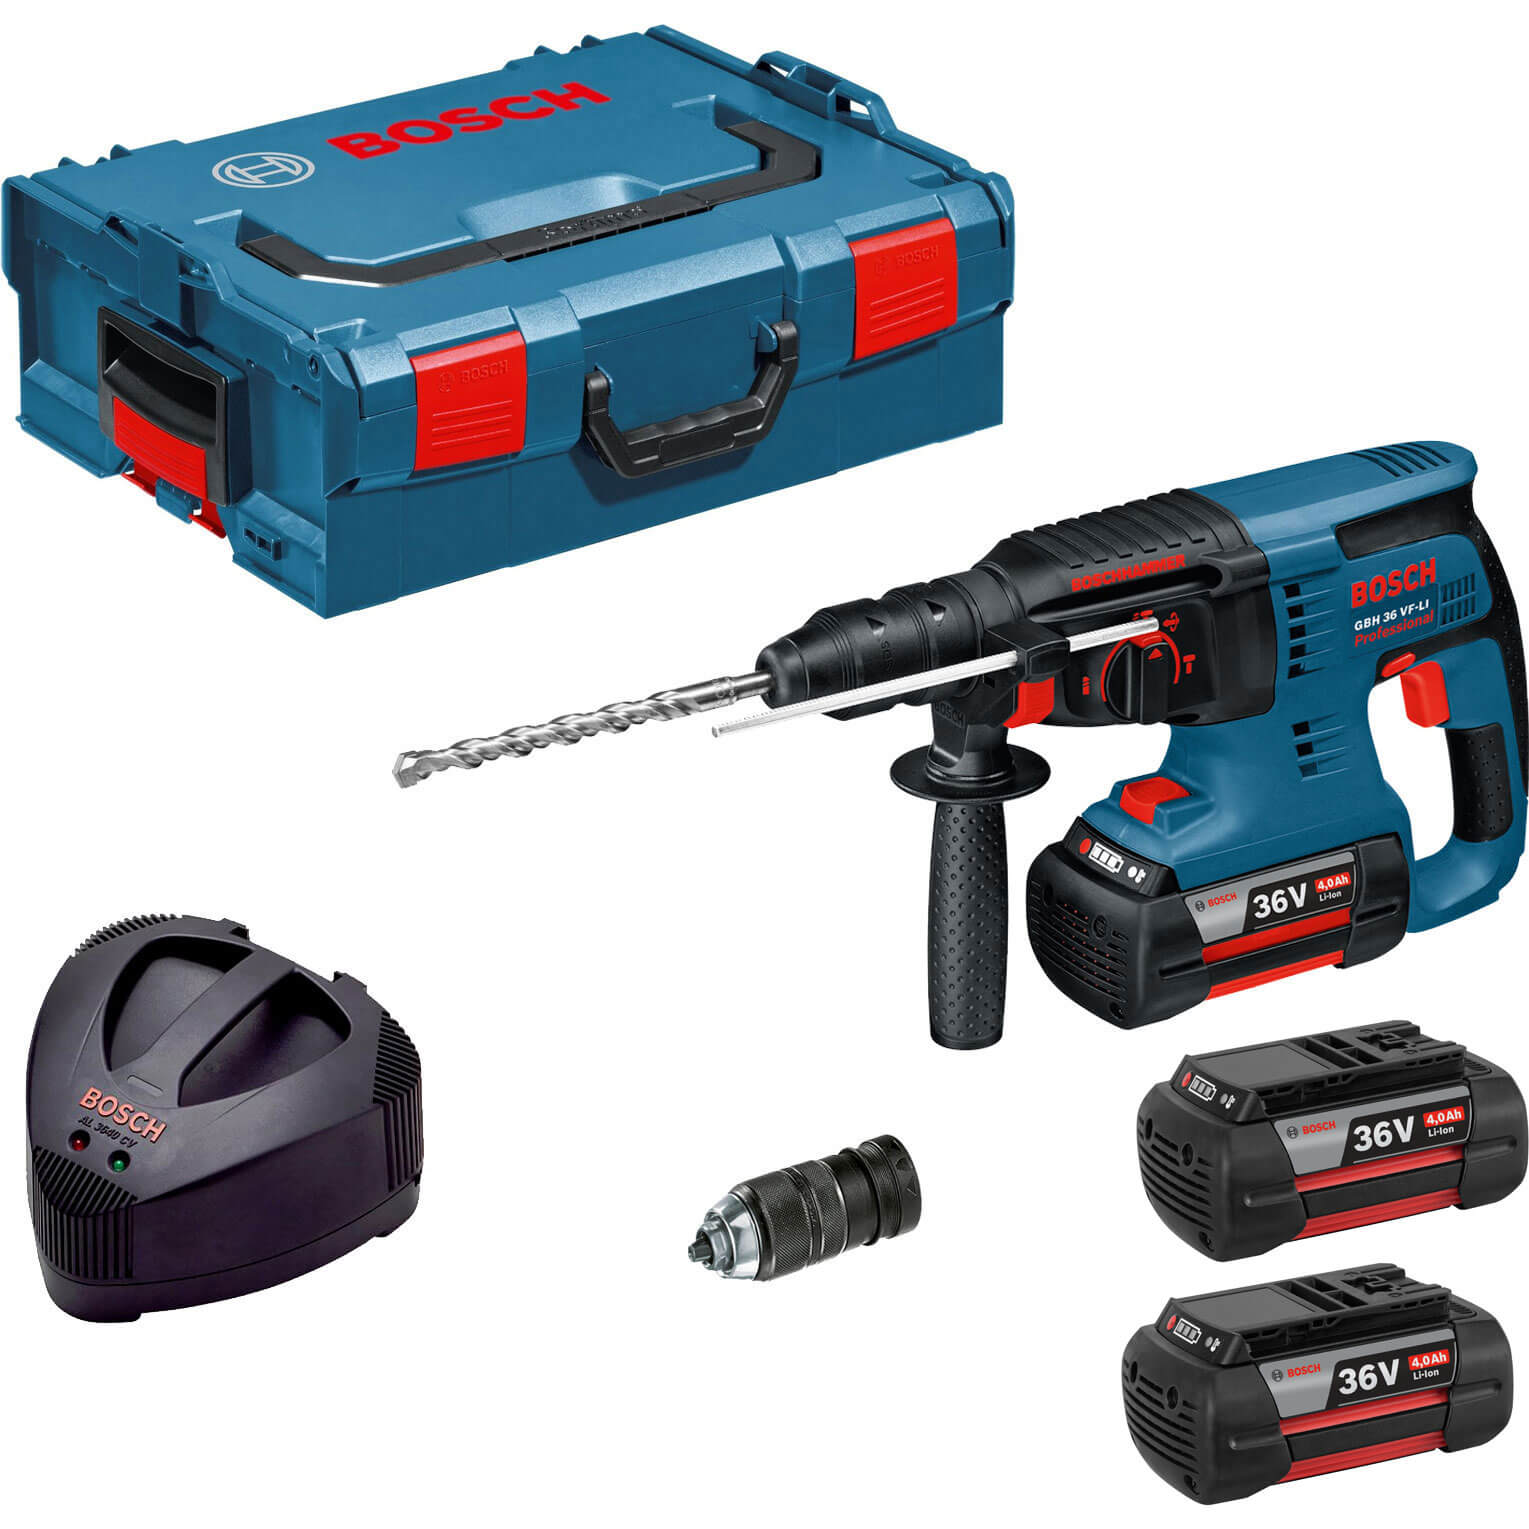 bosch gbh 2 28 dfv sds plus hammer drill 850w 240v with. Black Bedroom Furniture Sets. Home Design Ideas